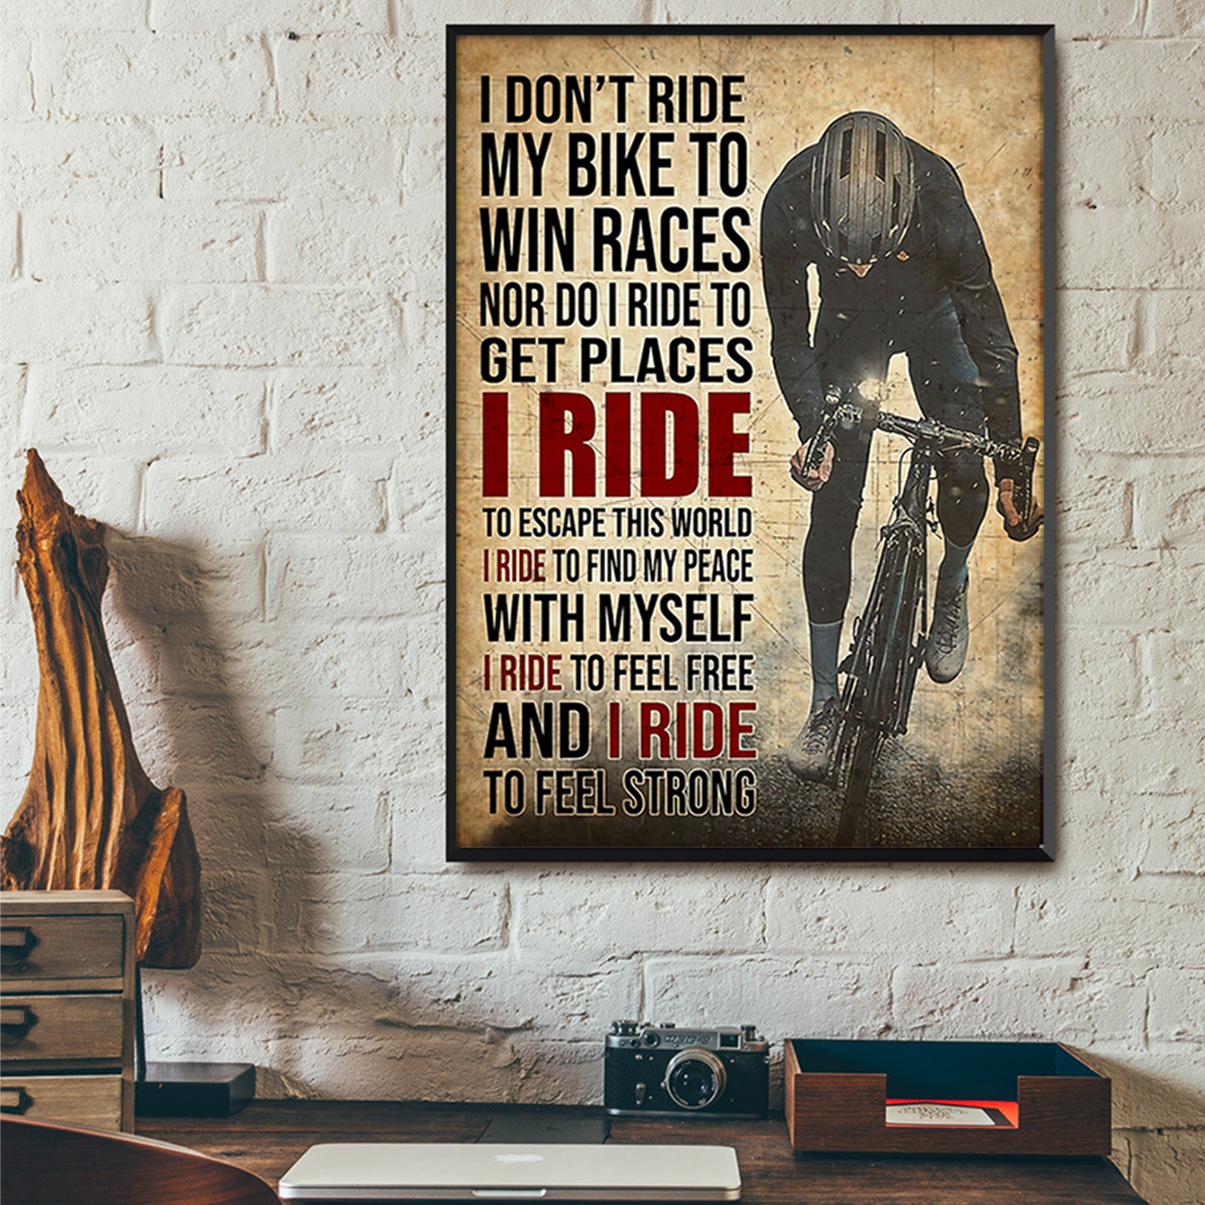 I don't ride my bike to win race nor I do ride to get places poster A2